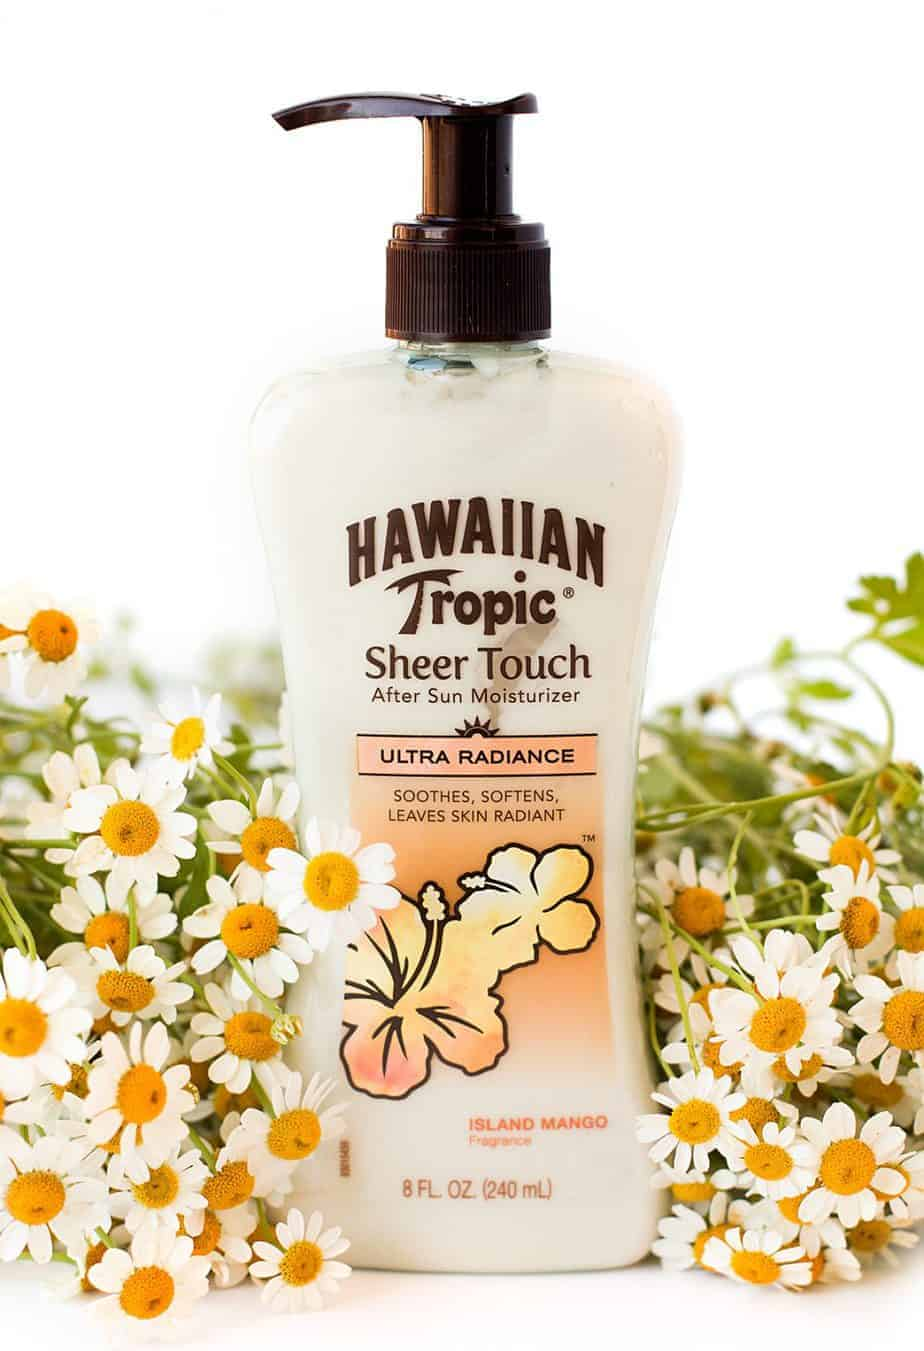 Hawaiian-Tropic-Sheer-Touch-Ultra-Radiance-Lotion-Sunscreen